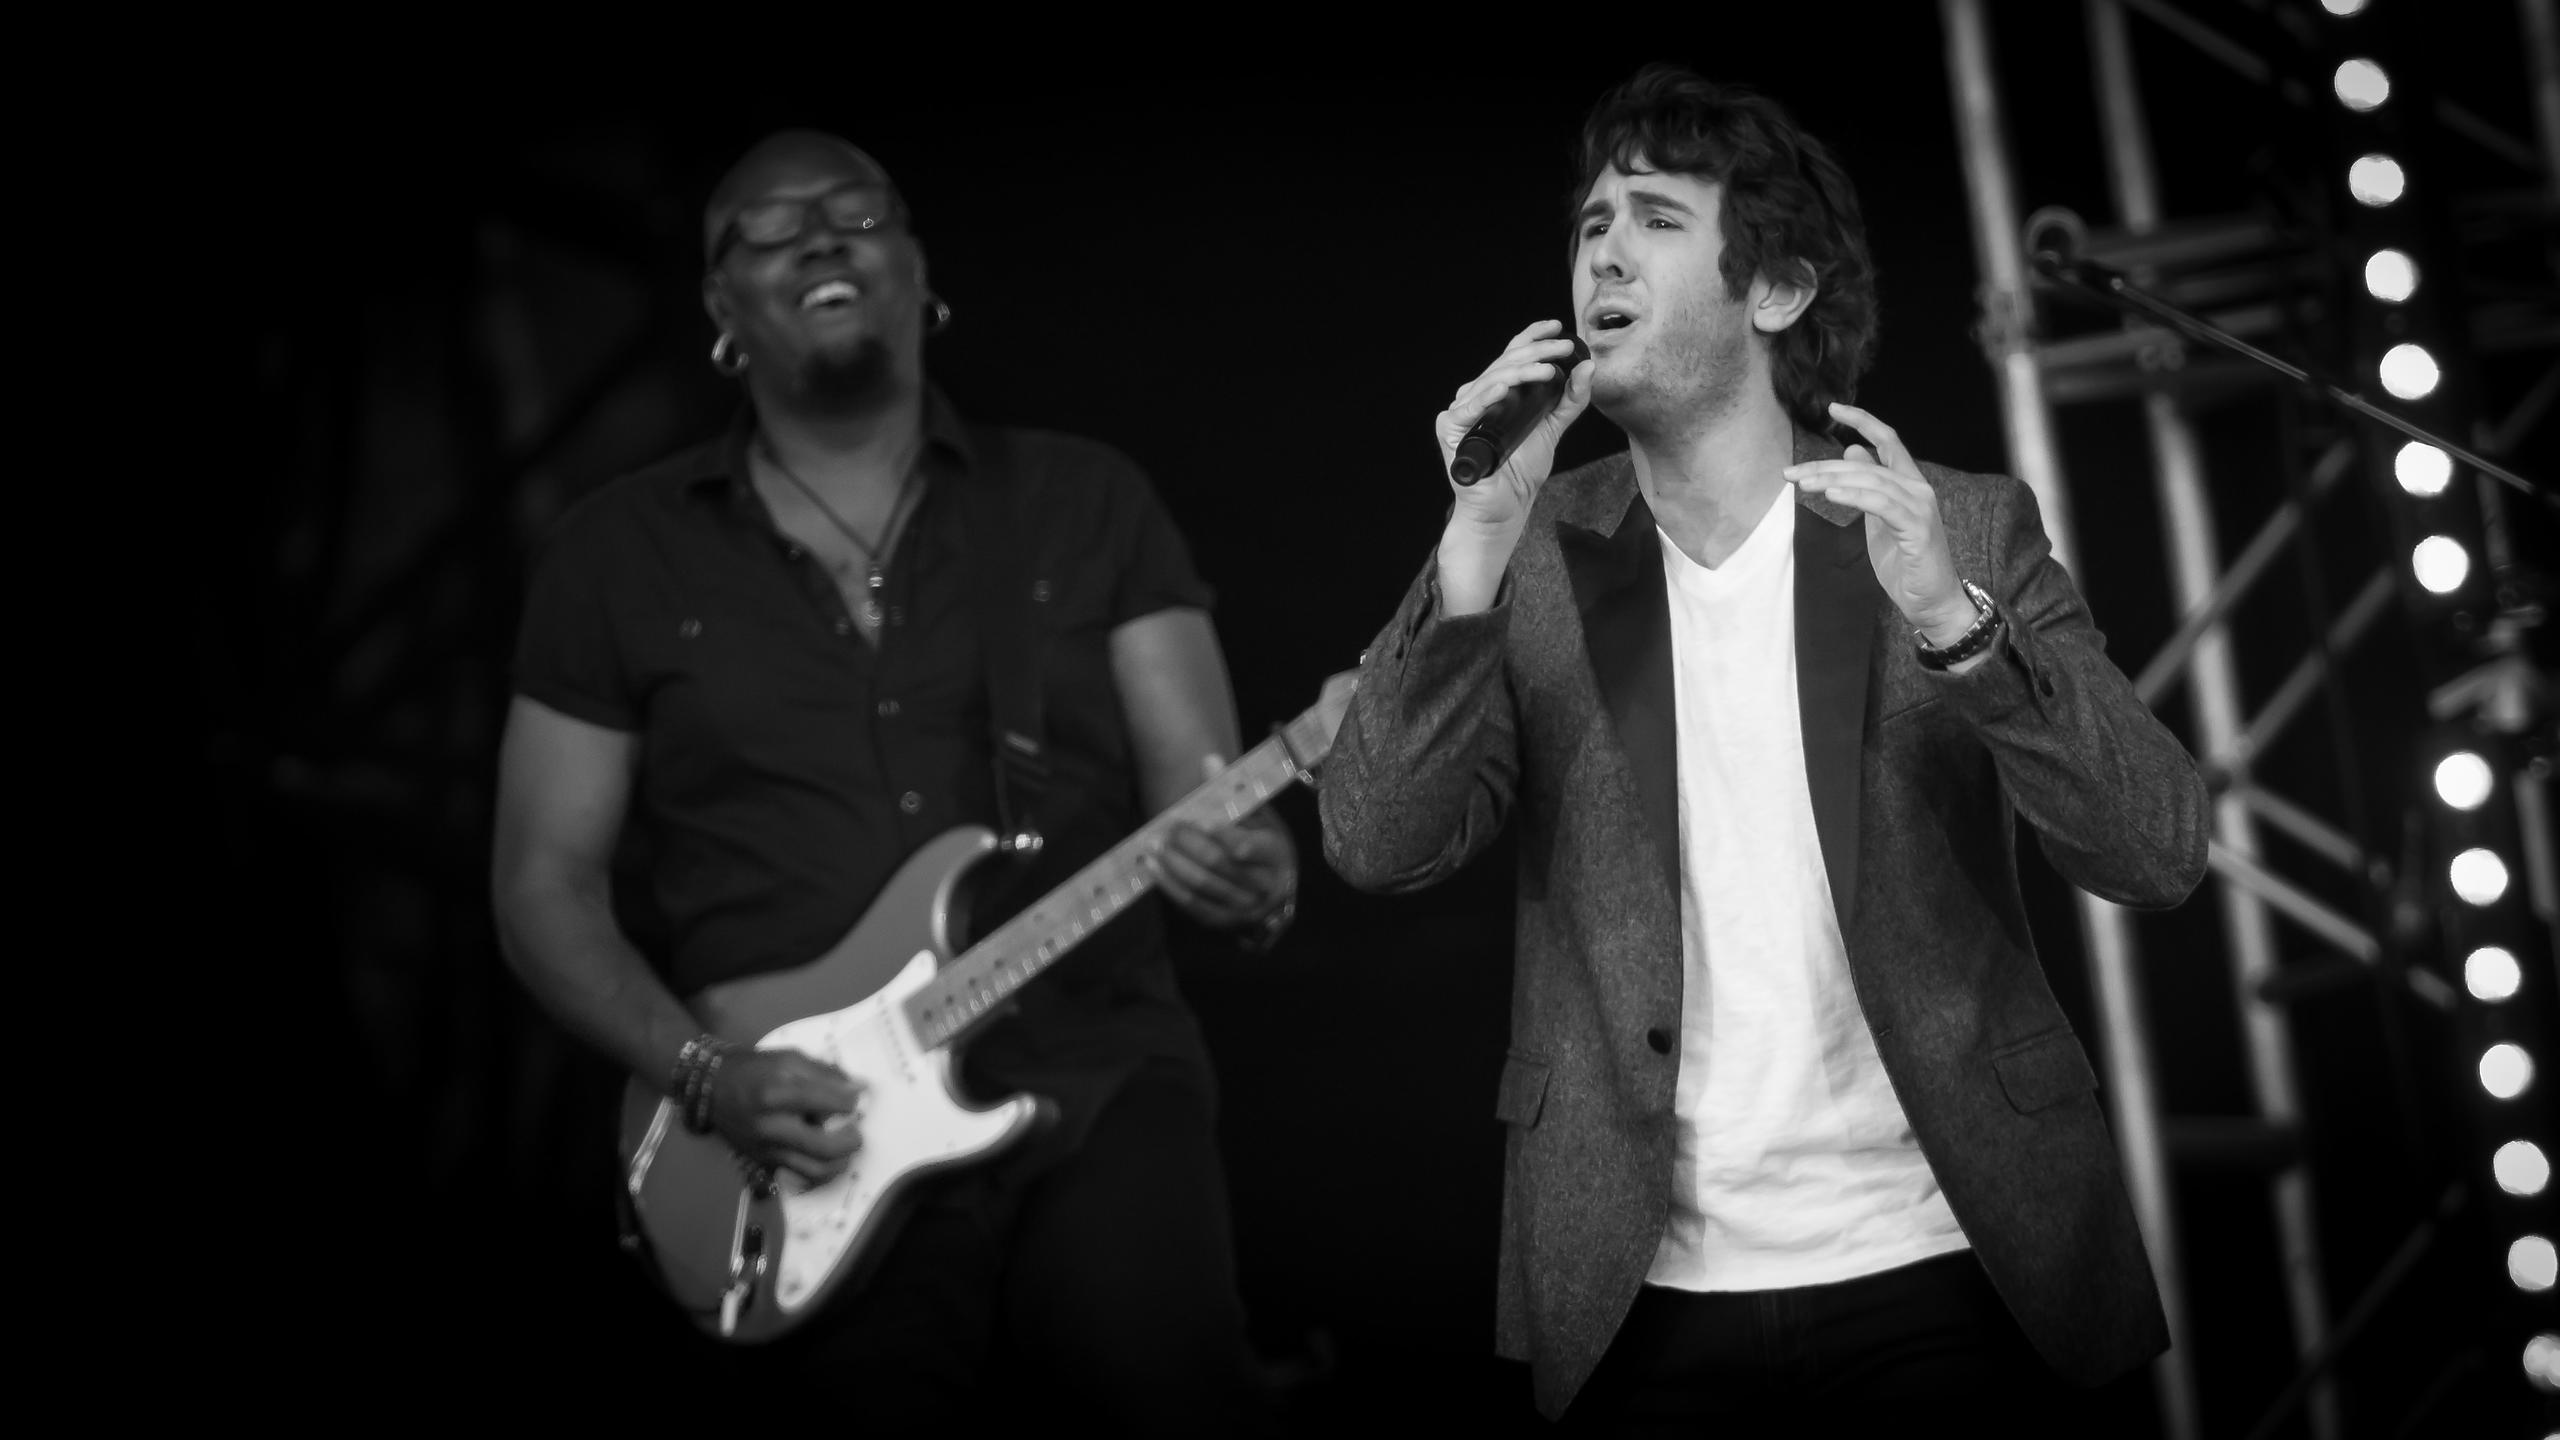 Josh Groban at Radio 2's Hyde Park Festival in a Day